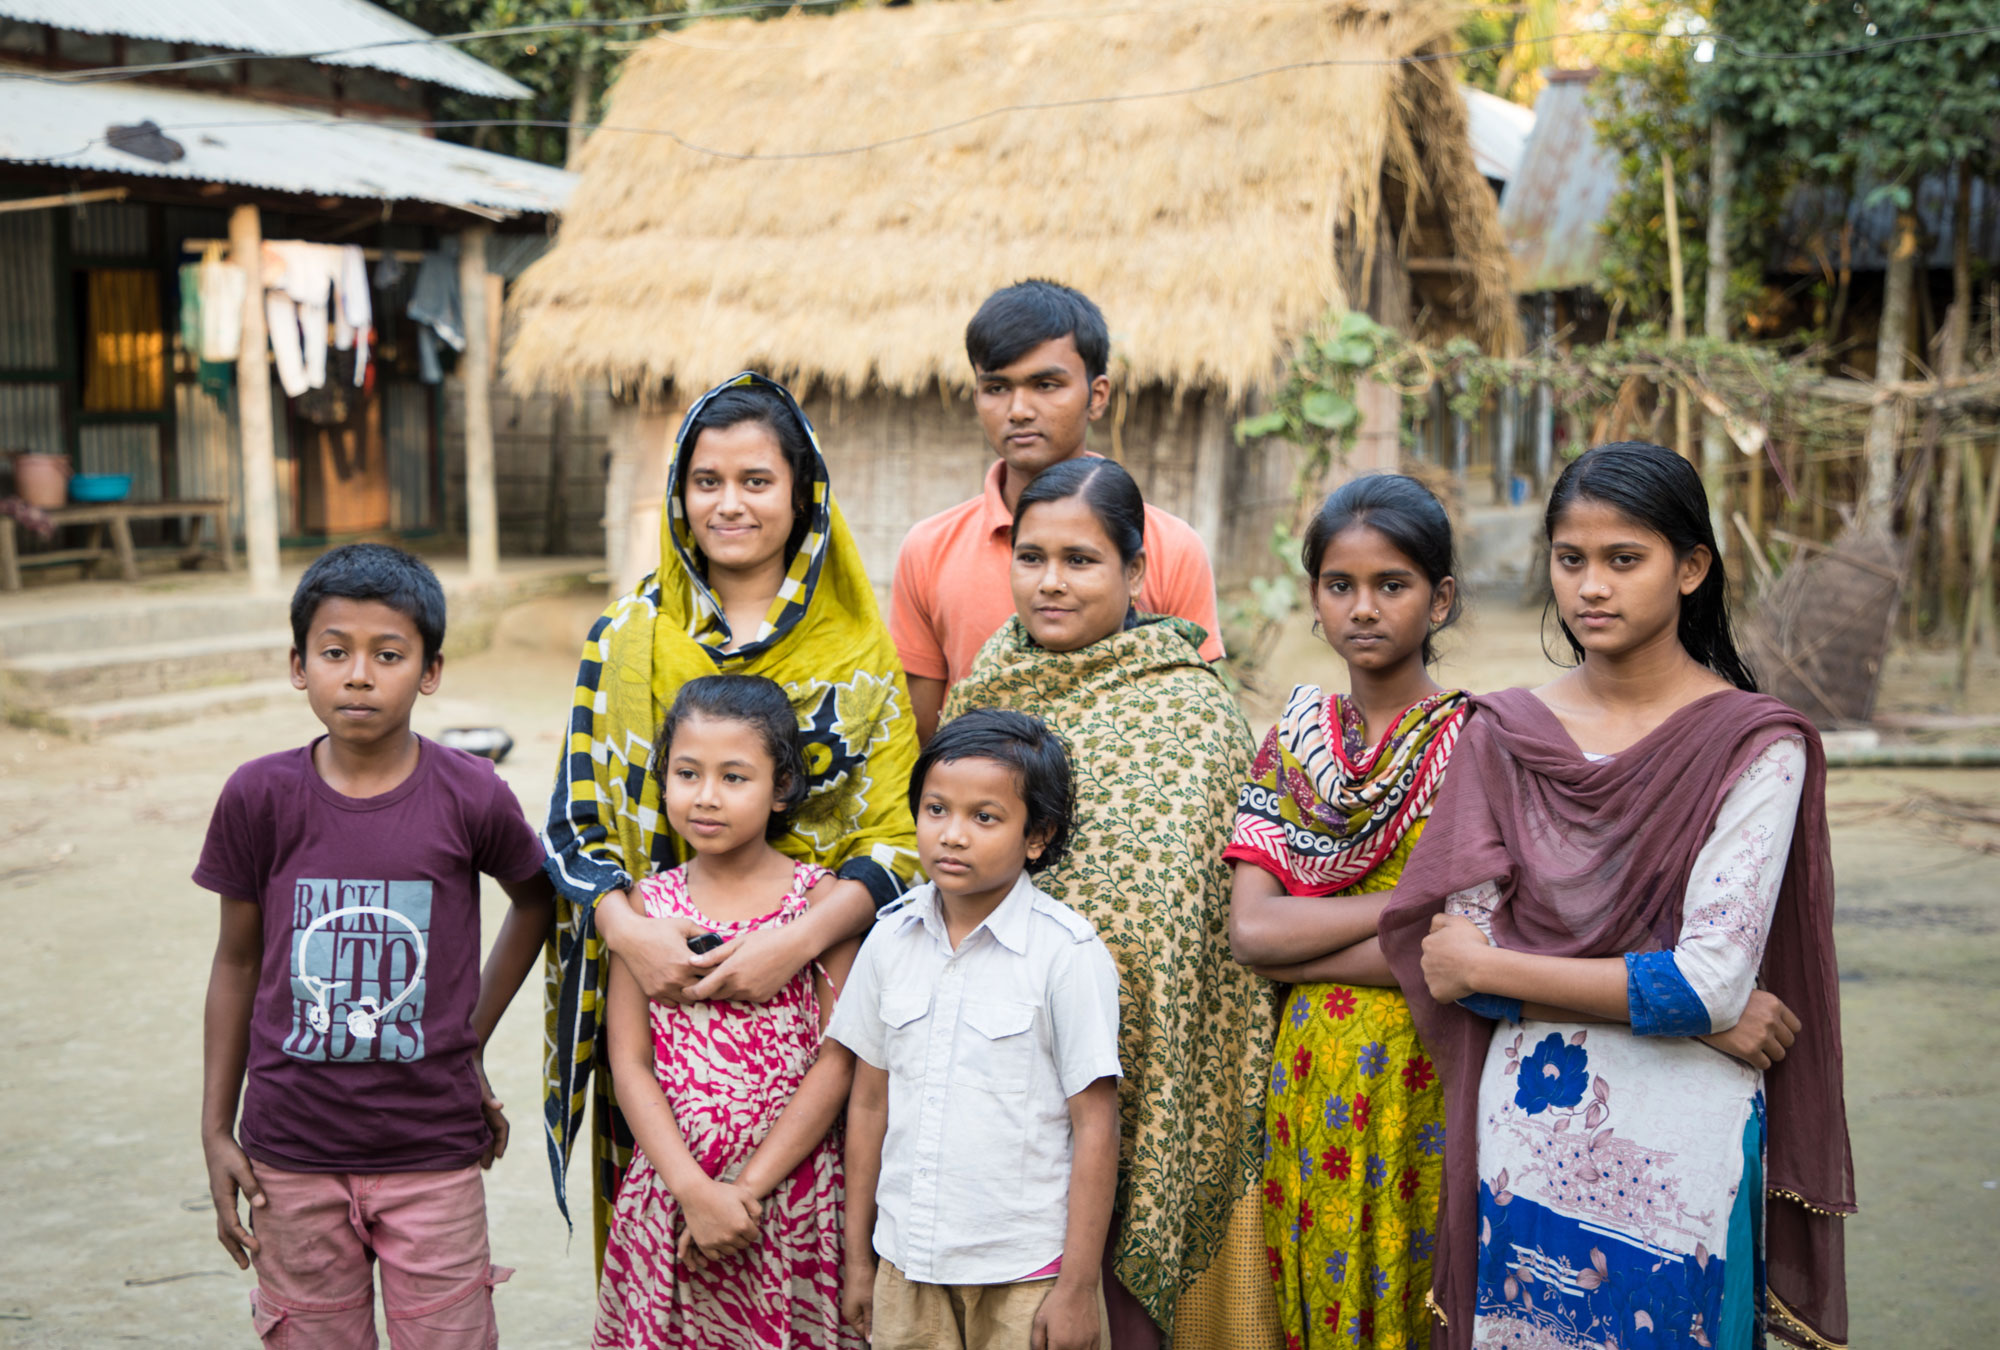 A group of local village people in Bangladesh